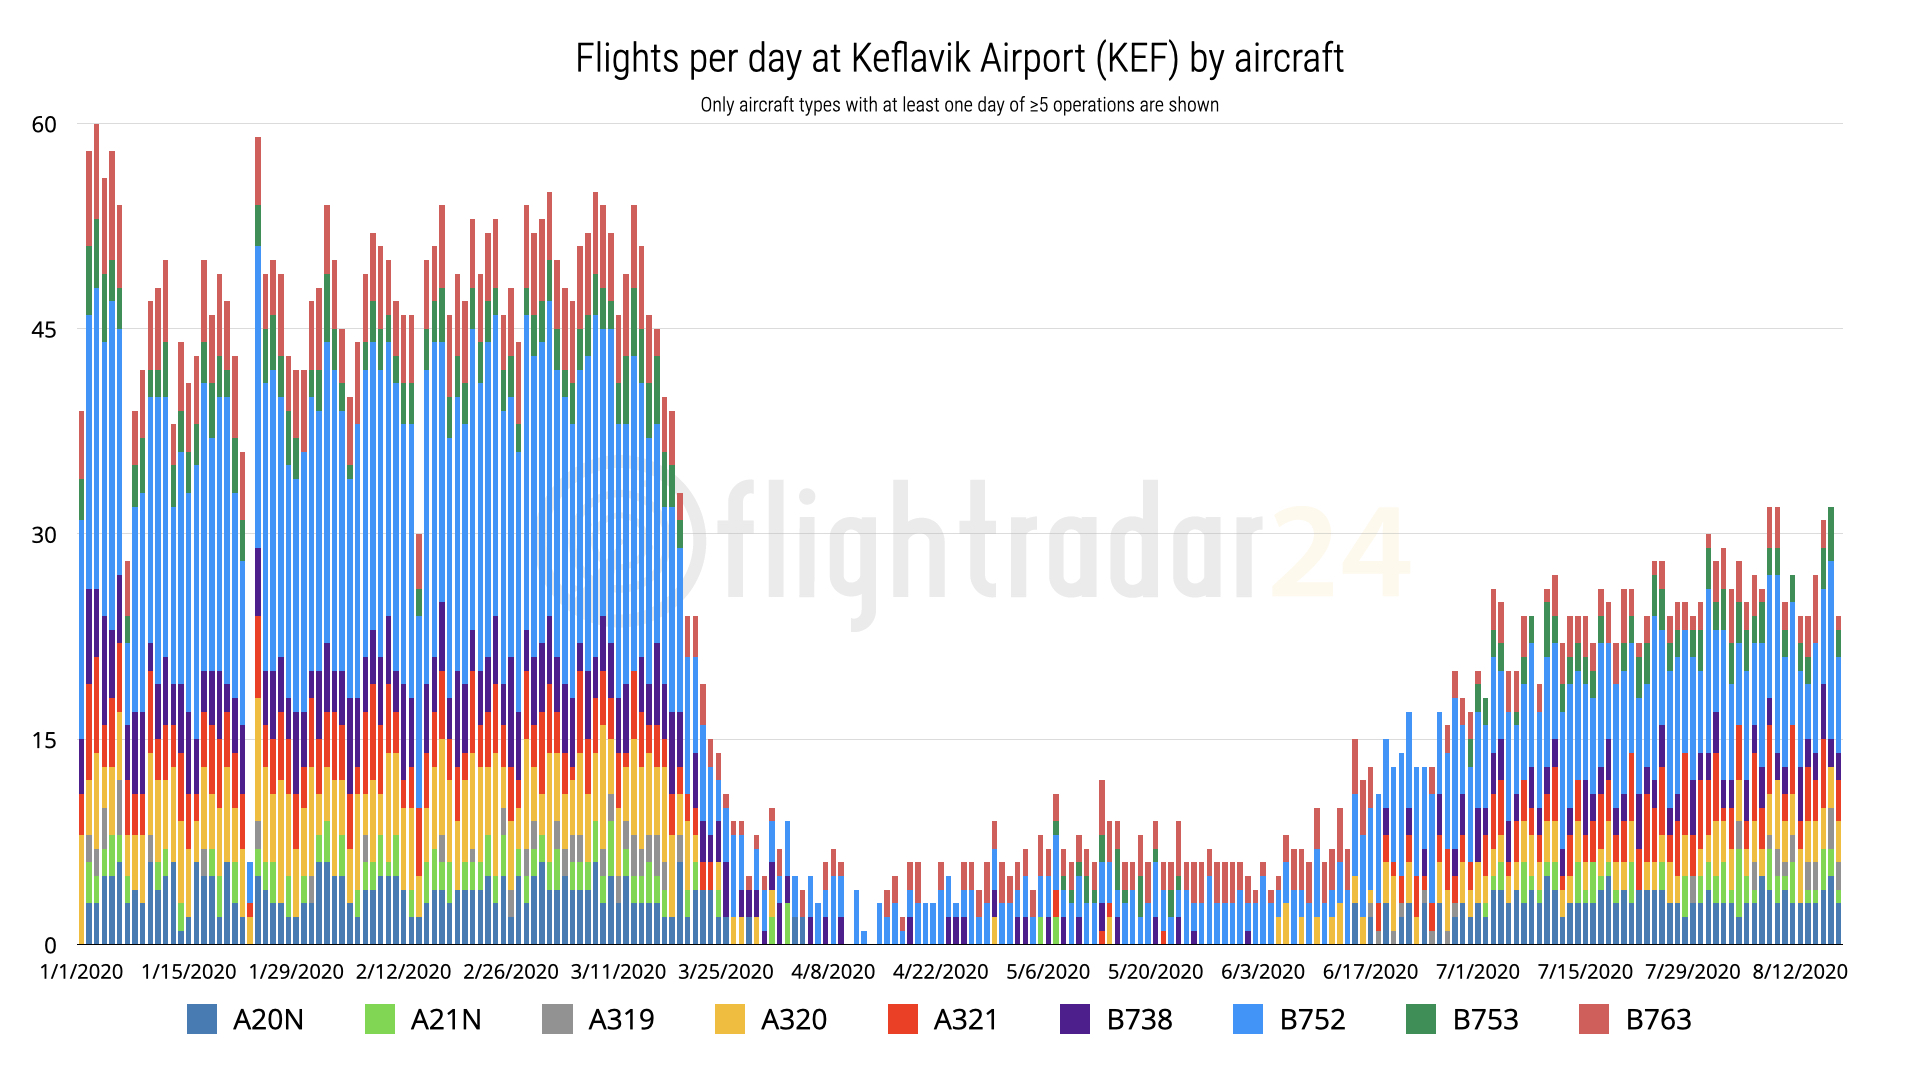 KEF data by aircraft type